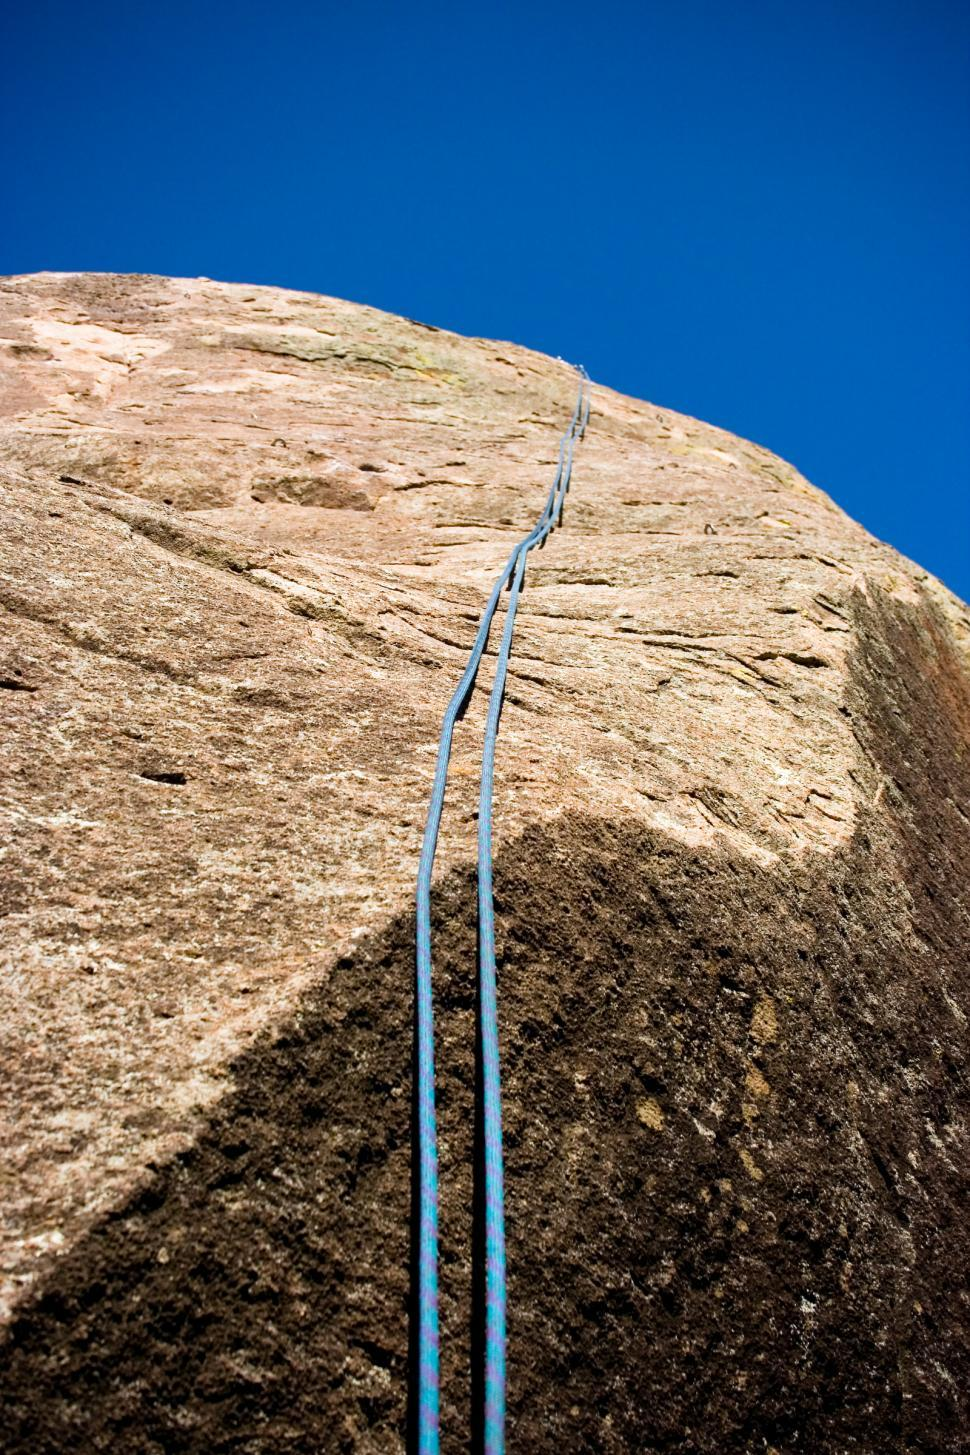 Download Free Stock HD Photo of climbing rope Online